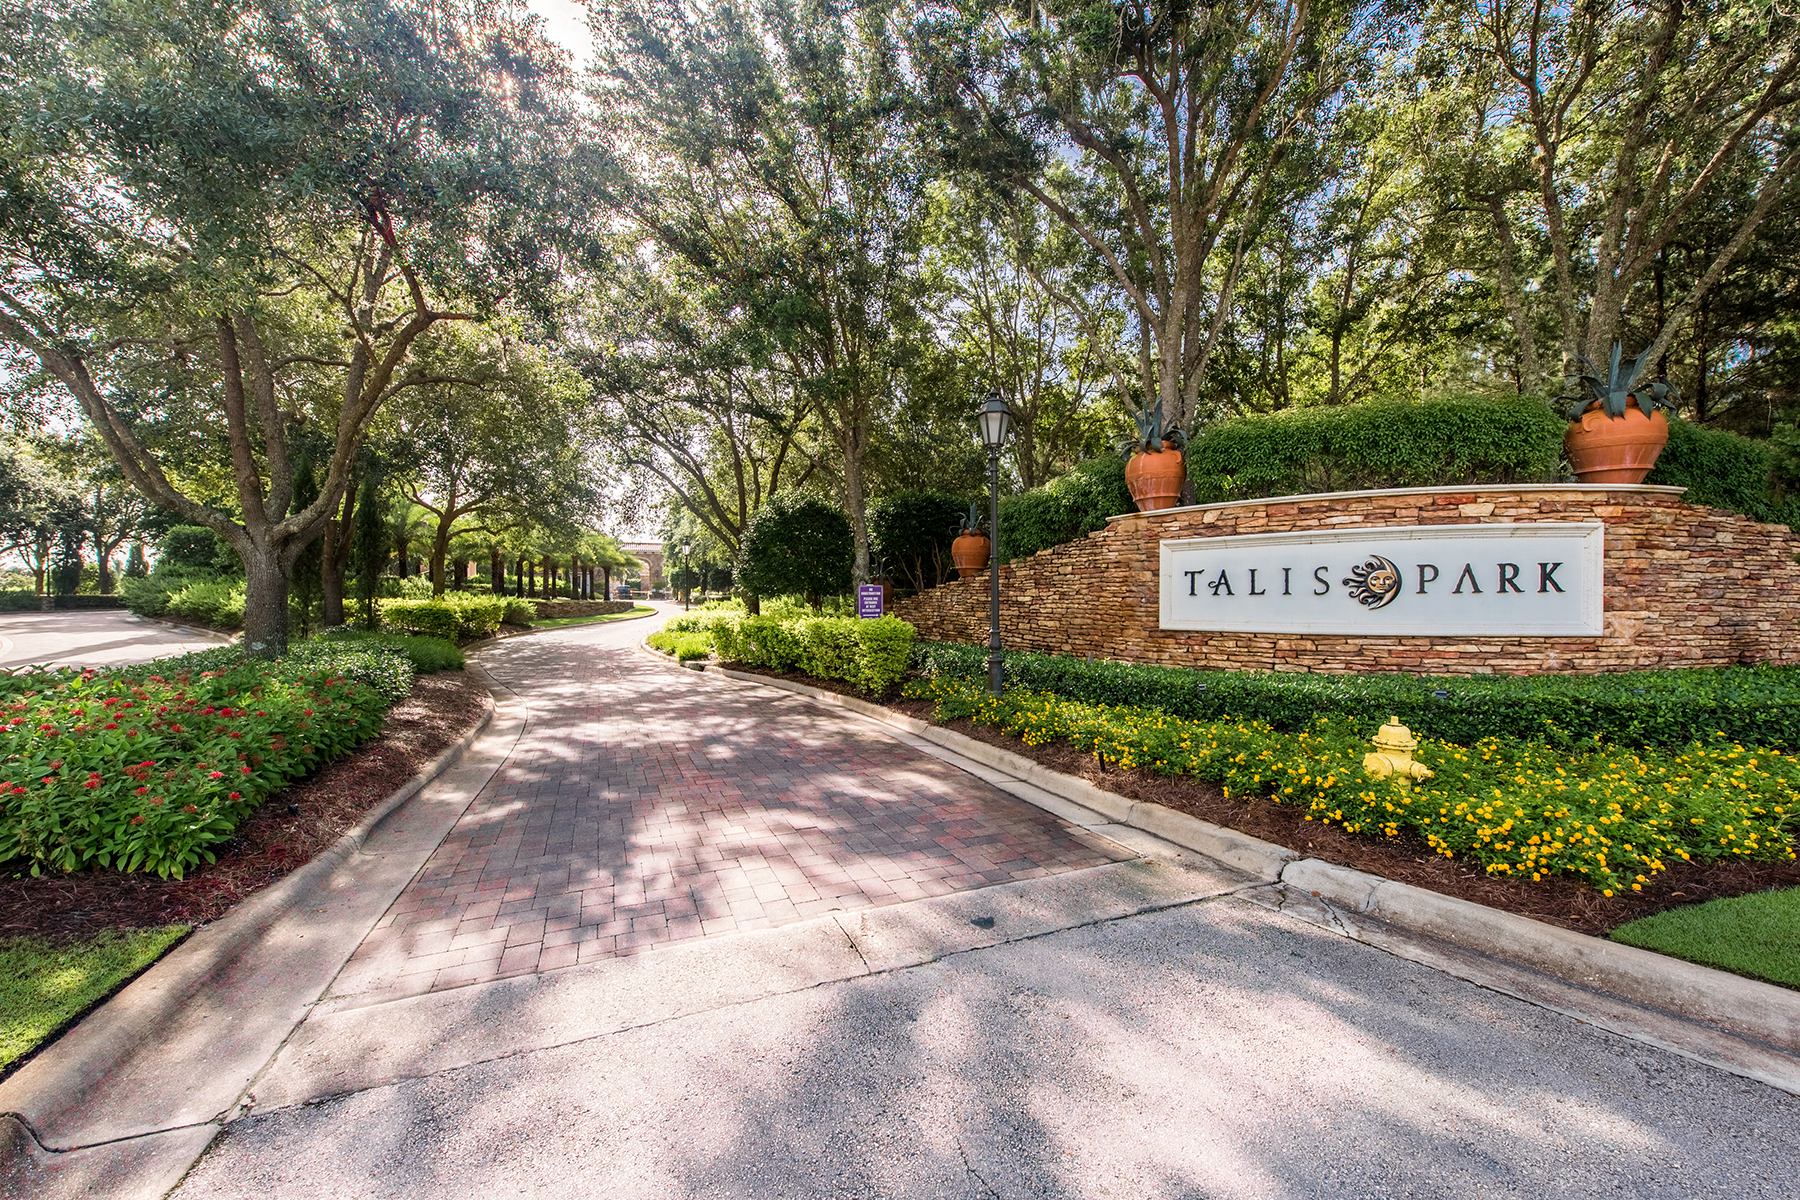 Additional photo for property listing at TALIS PARK - CARRARA 16437  Carrara Way 102,  Naples, Florida 34110 United States